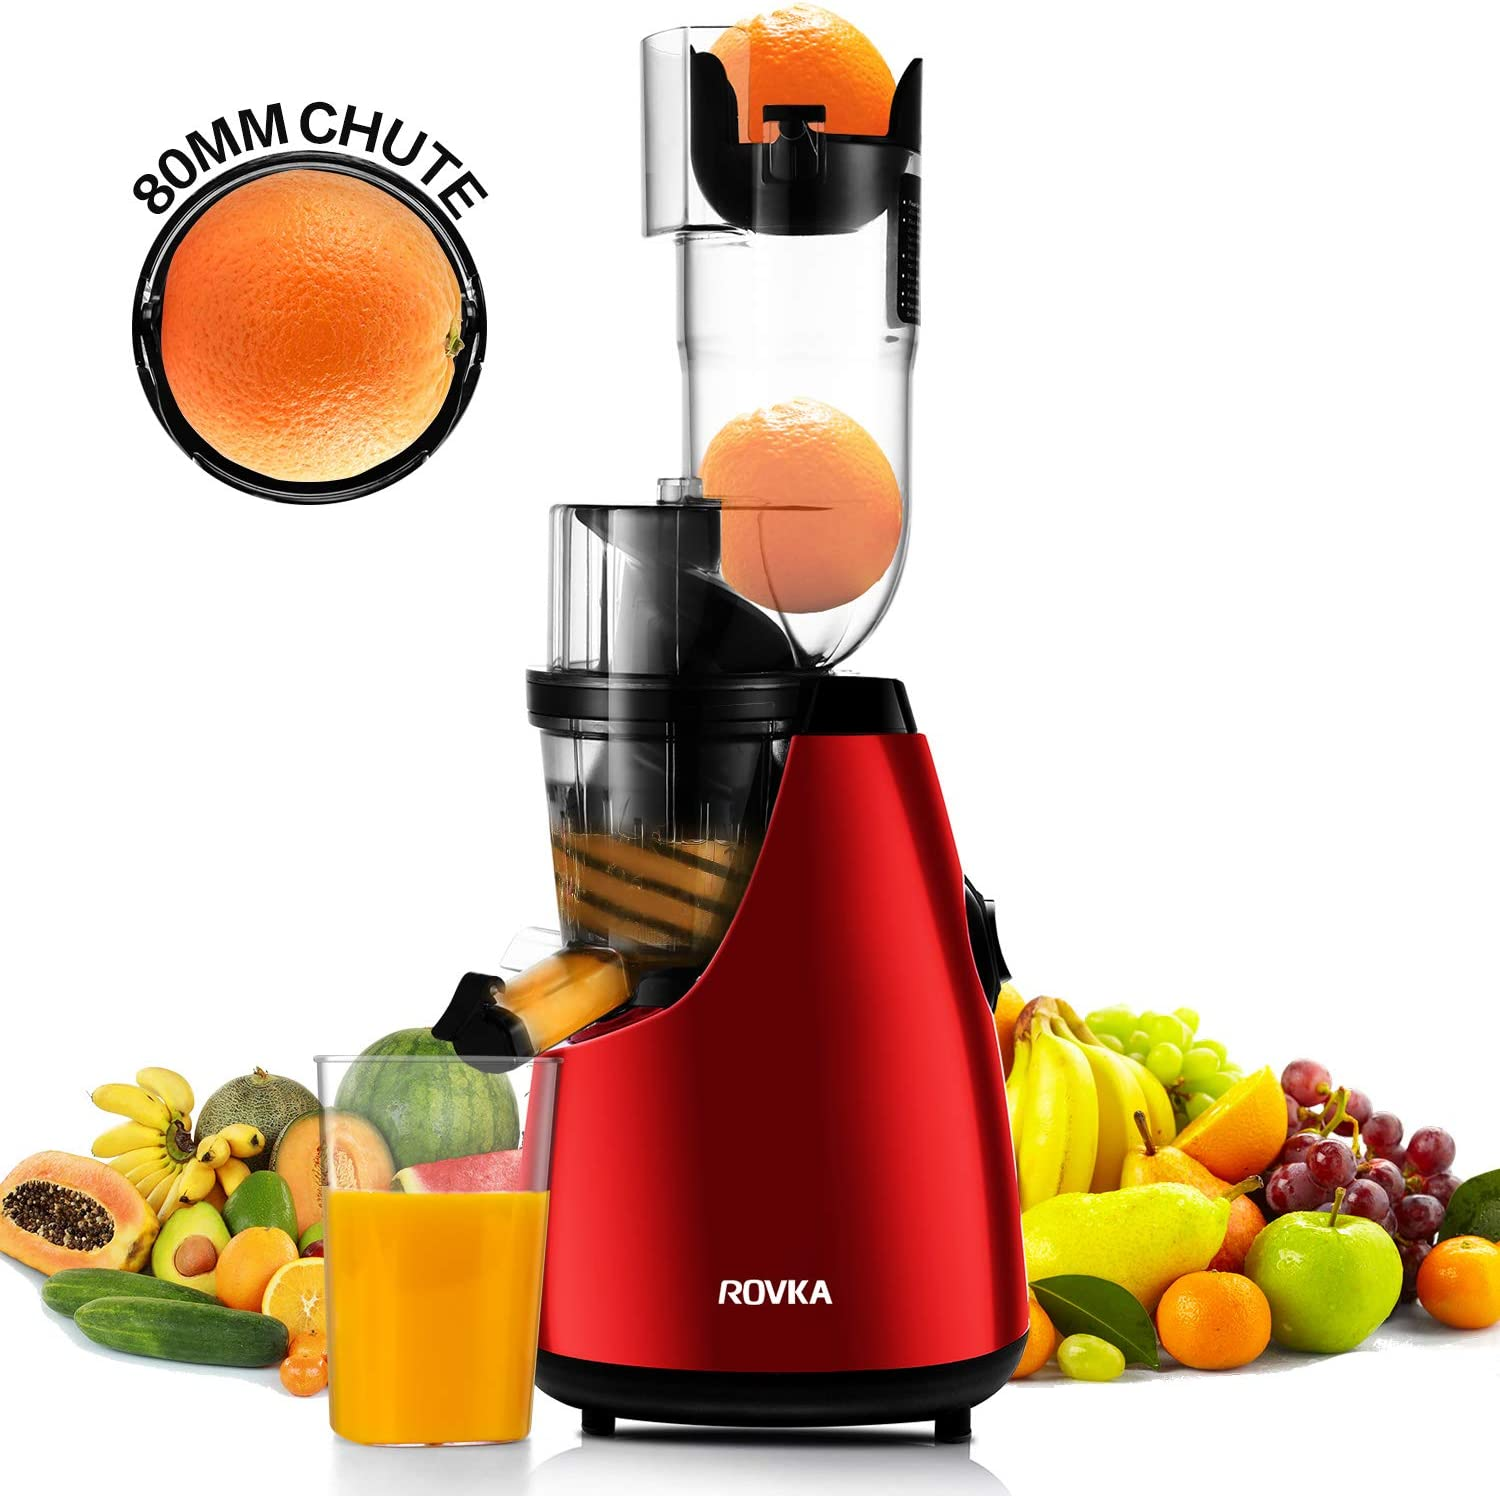 ROVKA Slow Masticating Juicer Extractor with 3.15 Inches Wide Chute Cold Press Juicer for Clean, High Juice Yield for Fruit and Vegetable